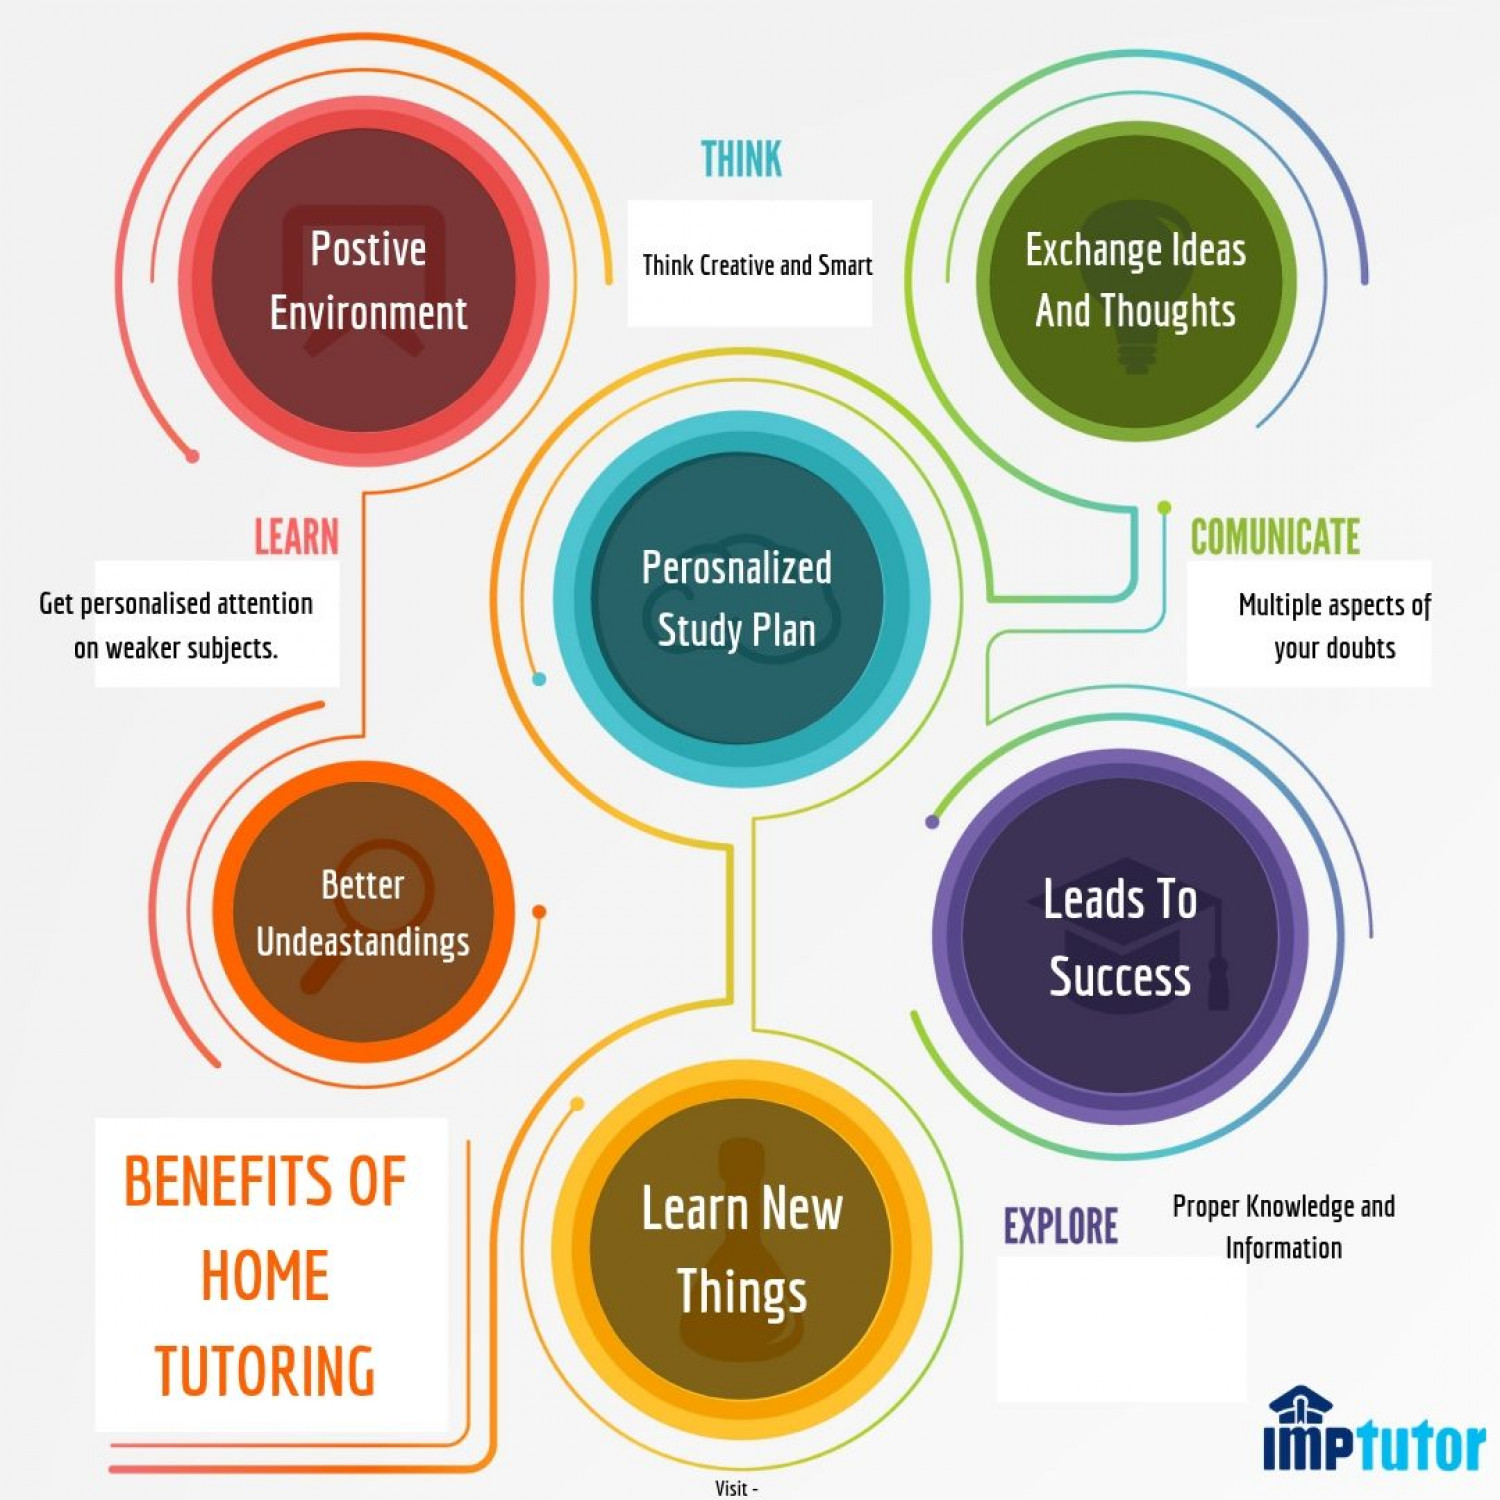 Home Tutoring - An Advantageous Learning Way Infographic